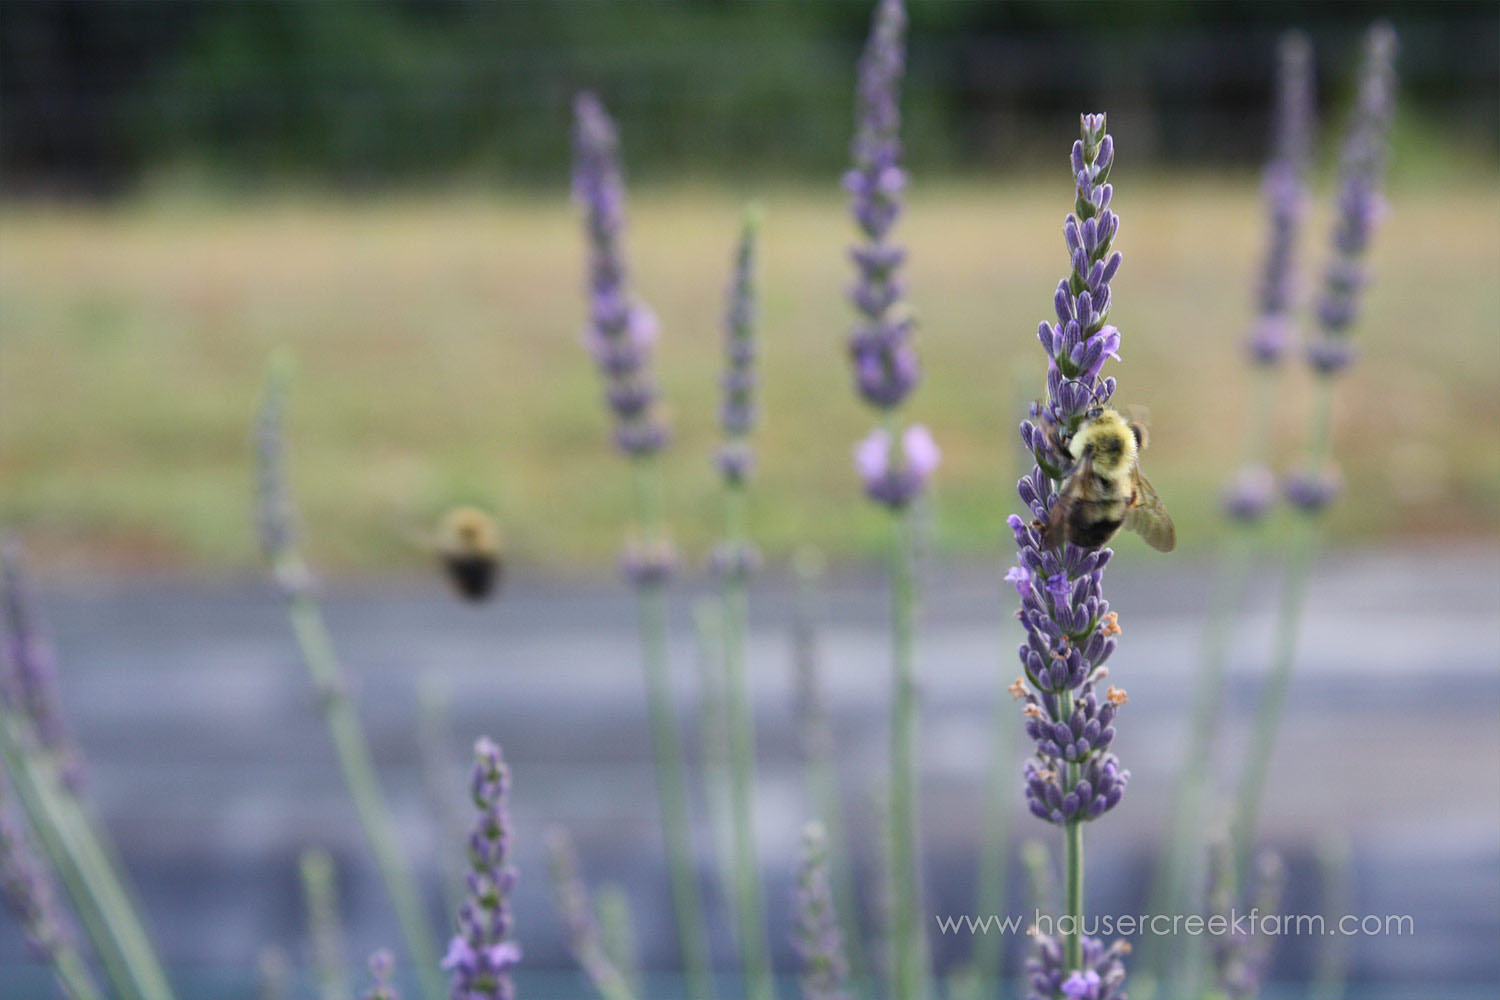 close-up-bee-and-lavender-growing-summer-hauser-creek-farm-IMG_9166.jpg